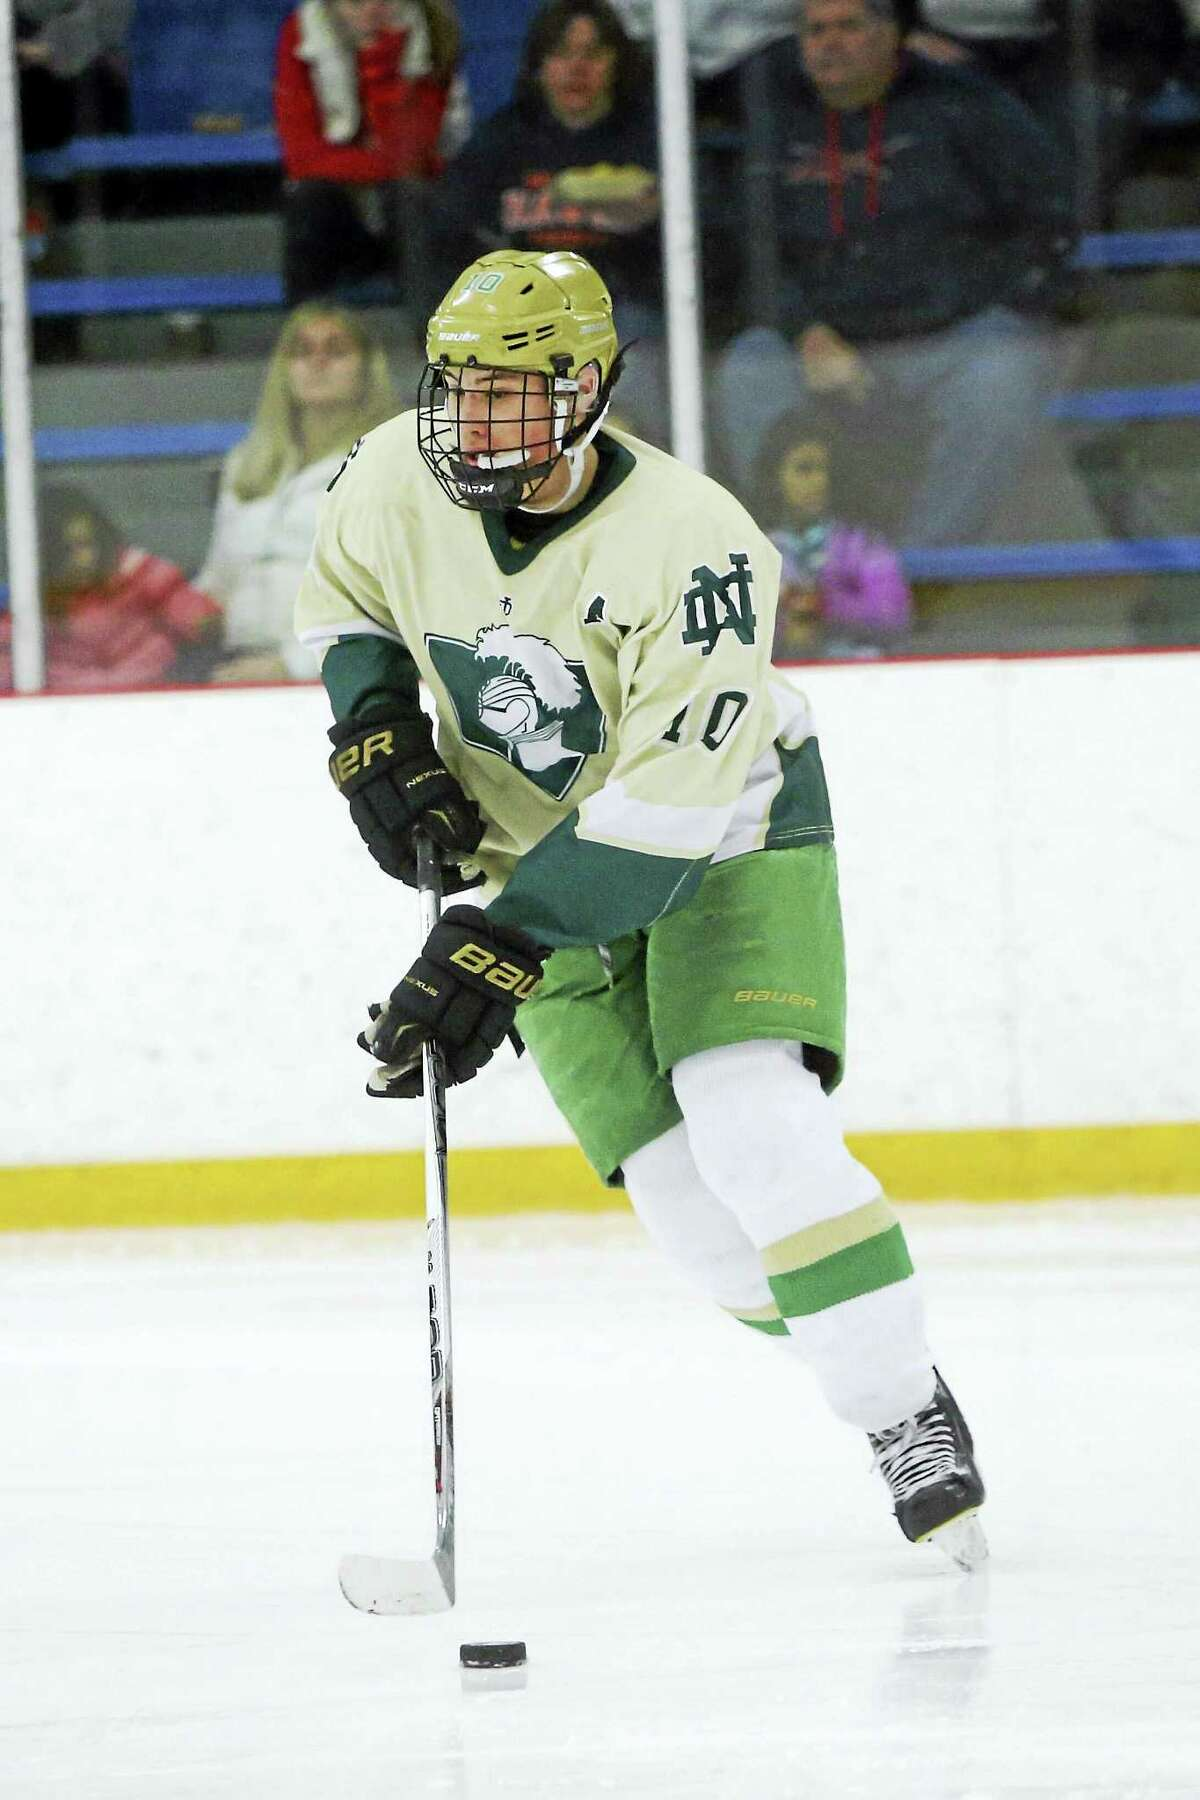 Notre Dame-West Haven defenseman Doug Caliendo scored the deciding goal 25 seconds into overtime in Notre Dame's 3-2 win over Northwest Catholic Wednesday.